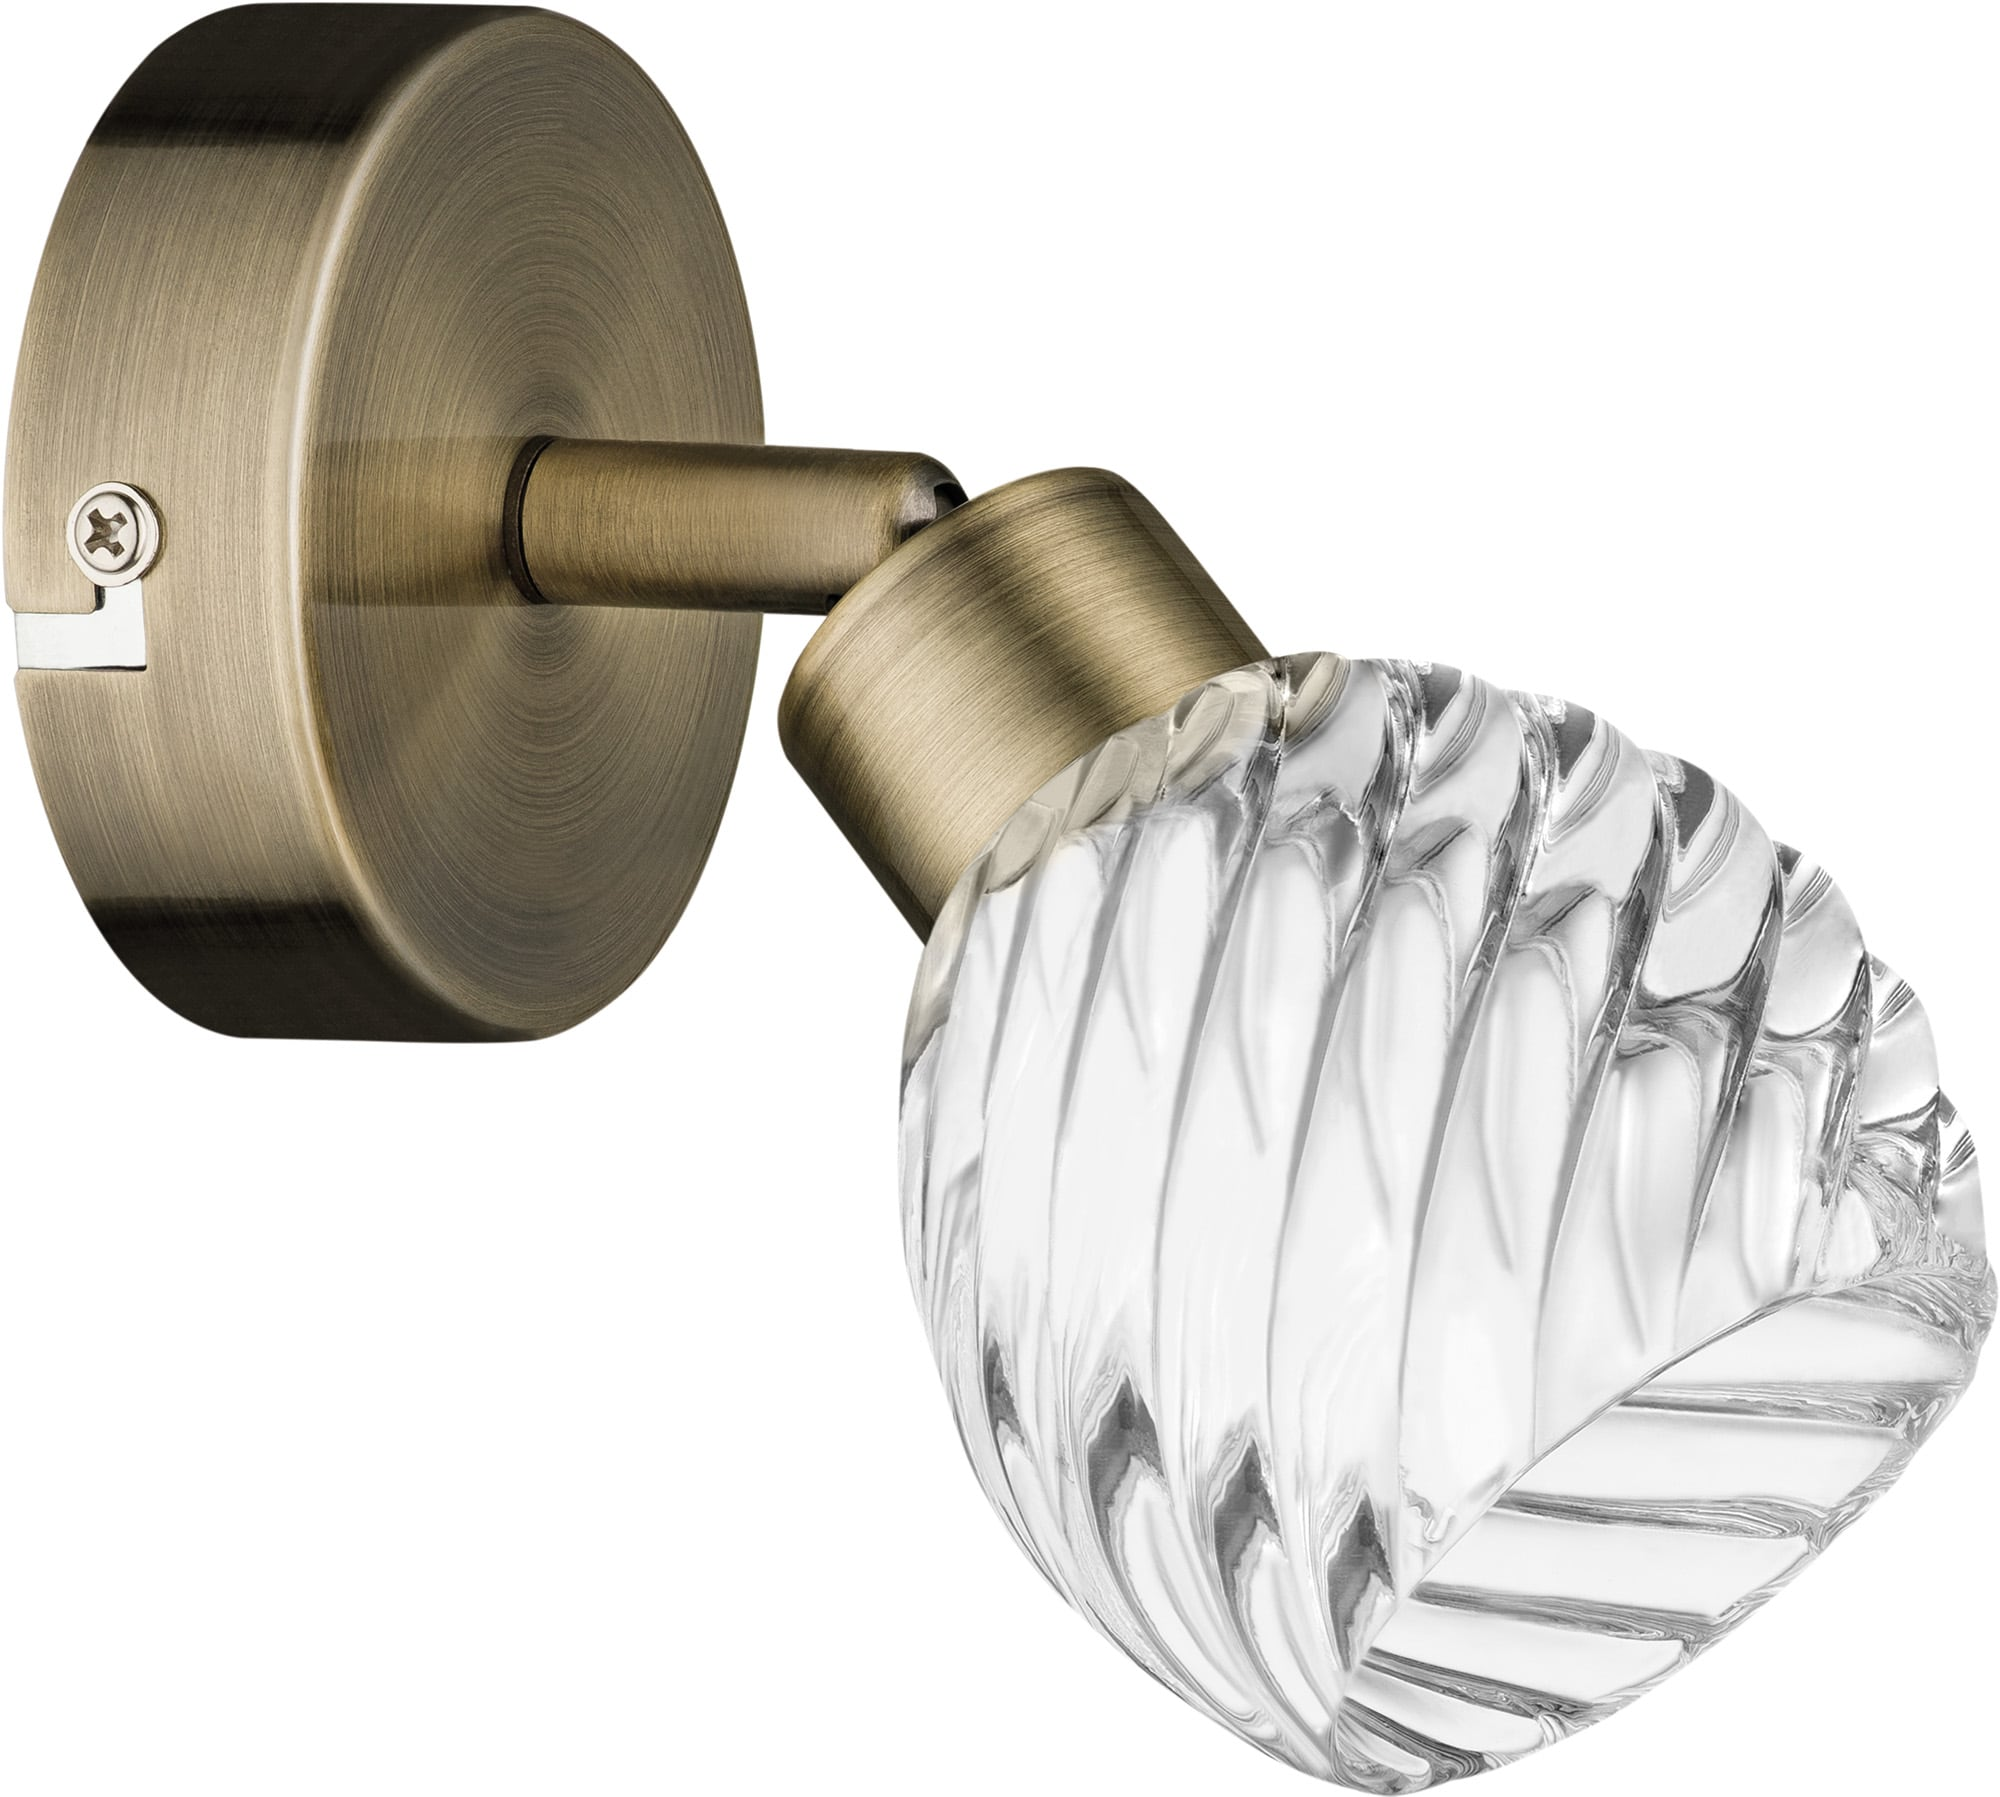 Patina classic wall lamp Wave Glass lampshade G9 28W